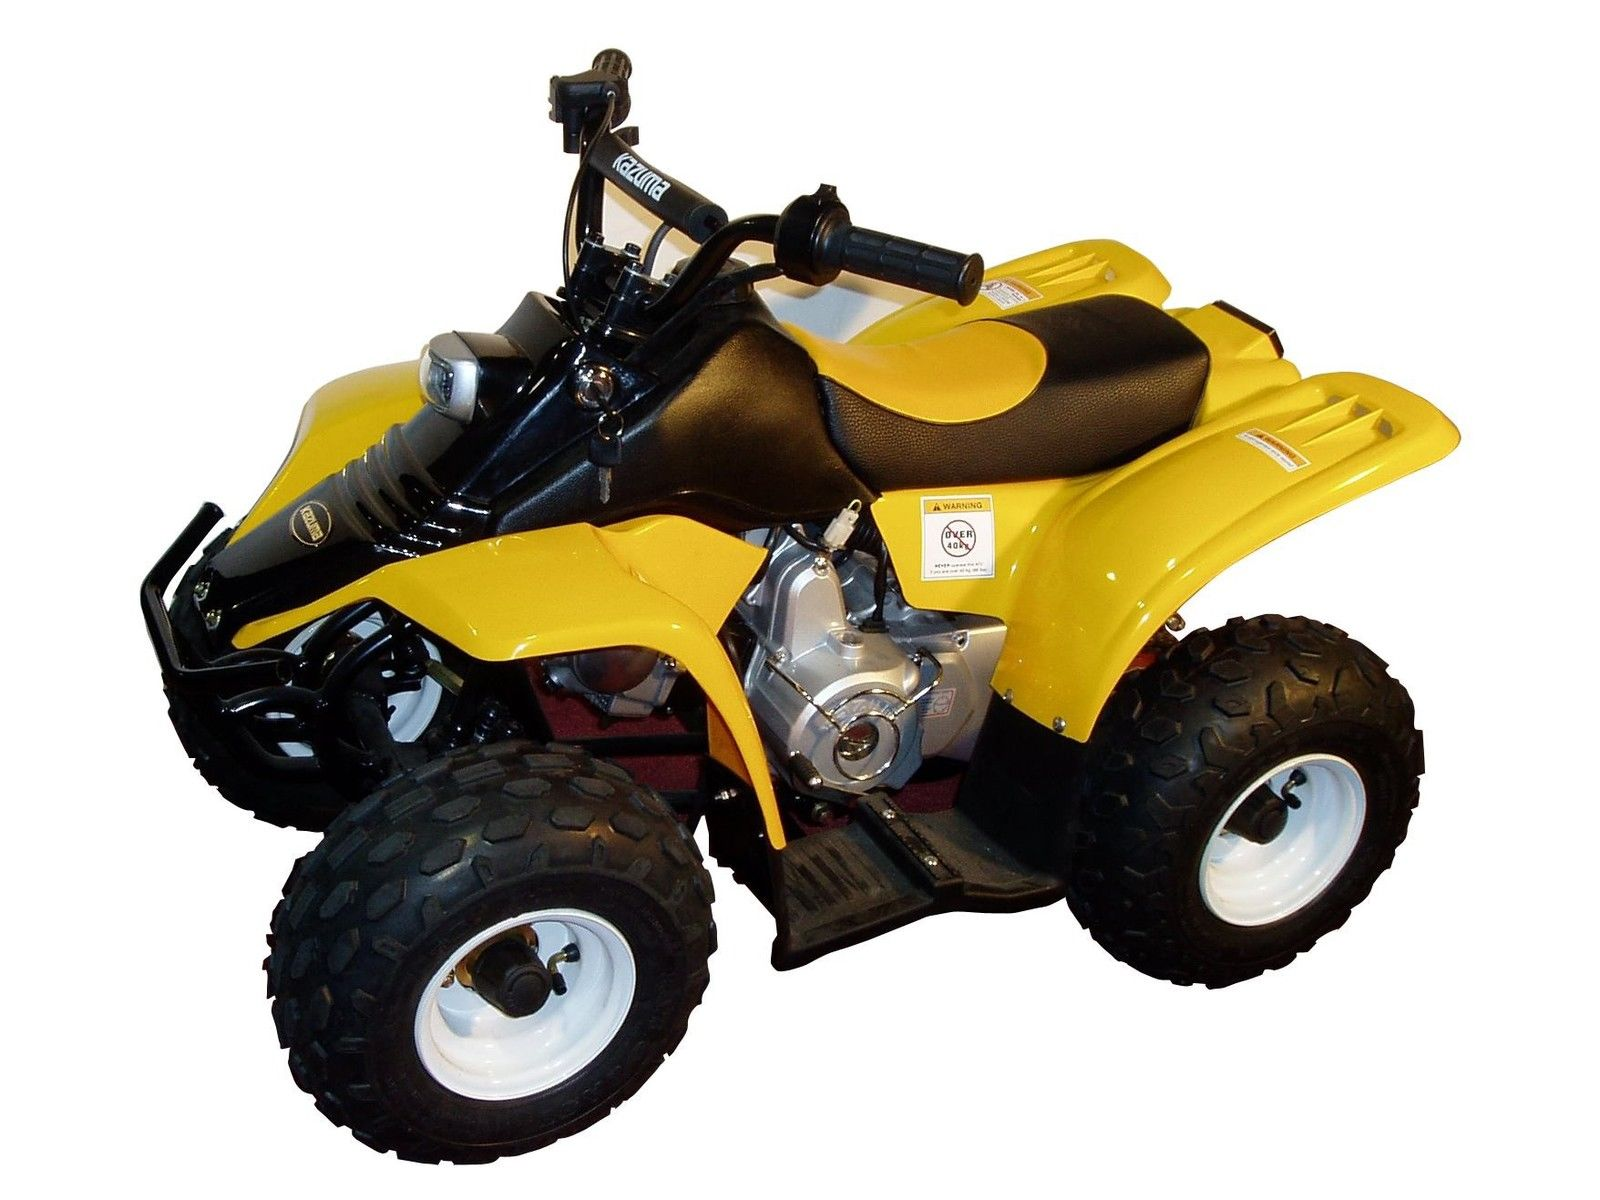 Schematics moreover Wiring Diagram Chinese Atv Diagrams 110cc likewise Watch in addition 25534 Brand New Kazuma Meerkat 50cc Childs Quad Bike For Kids Suzuki Lt50 Size likewise Downloads Page. on redcat atv parts diagram